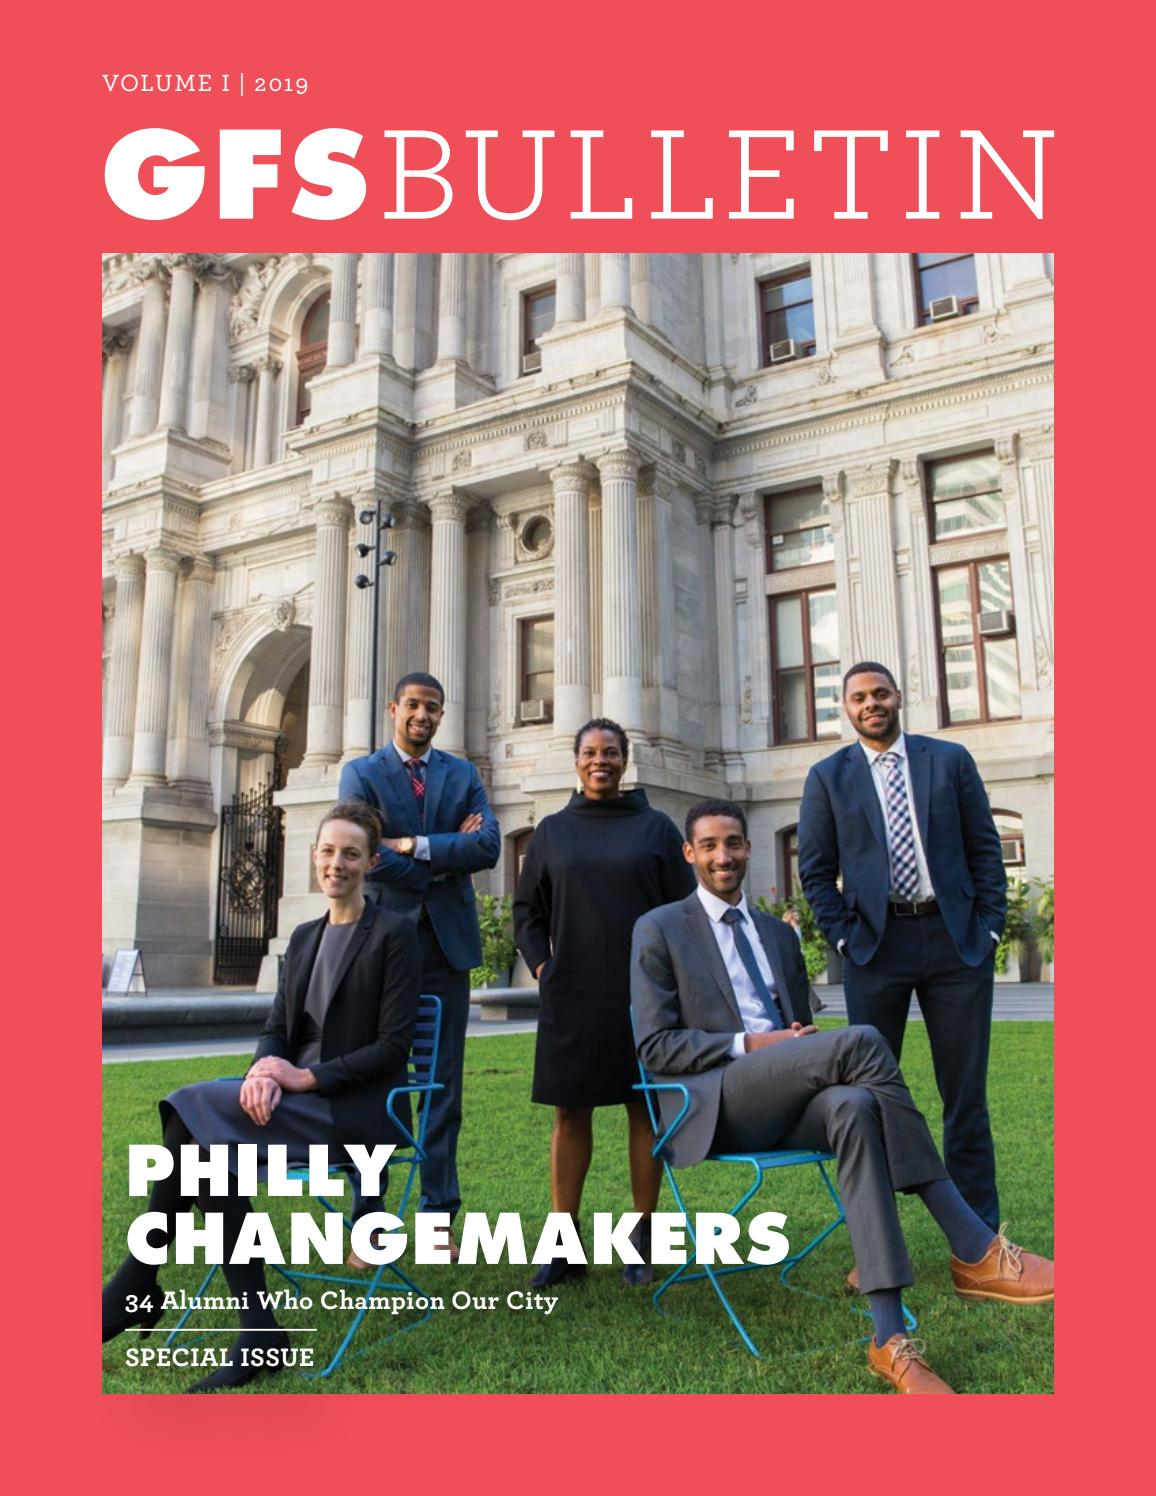 GFS Bulletin: Philly Changemakers, Vol  I 2019 by Germantown Friends